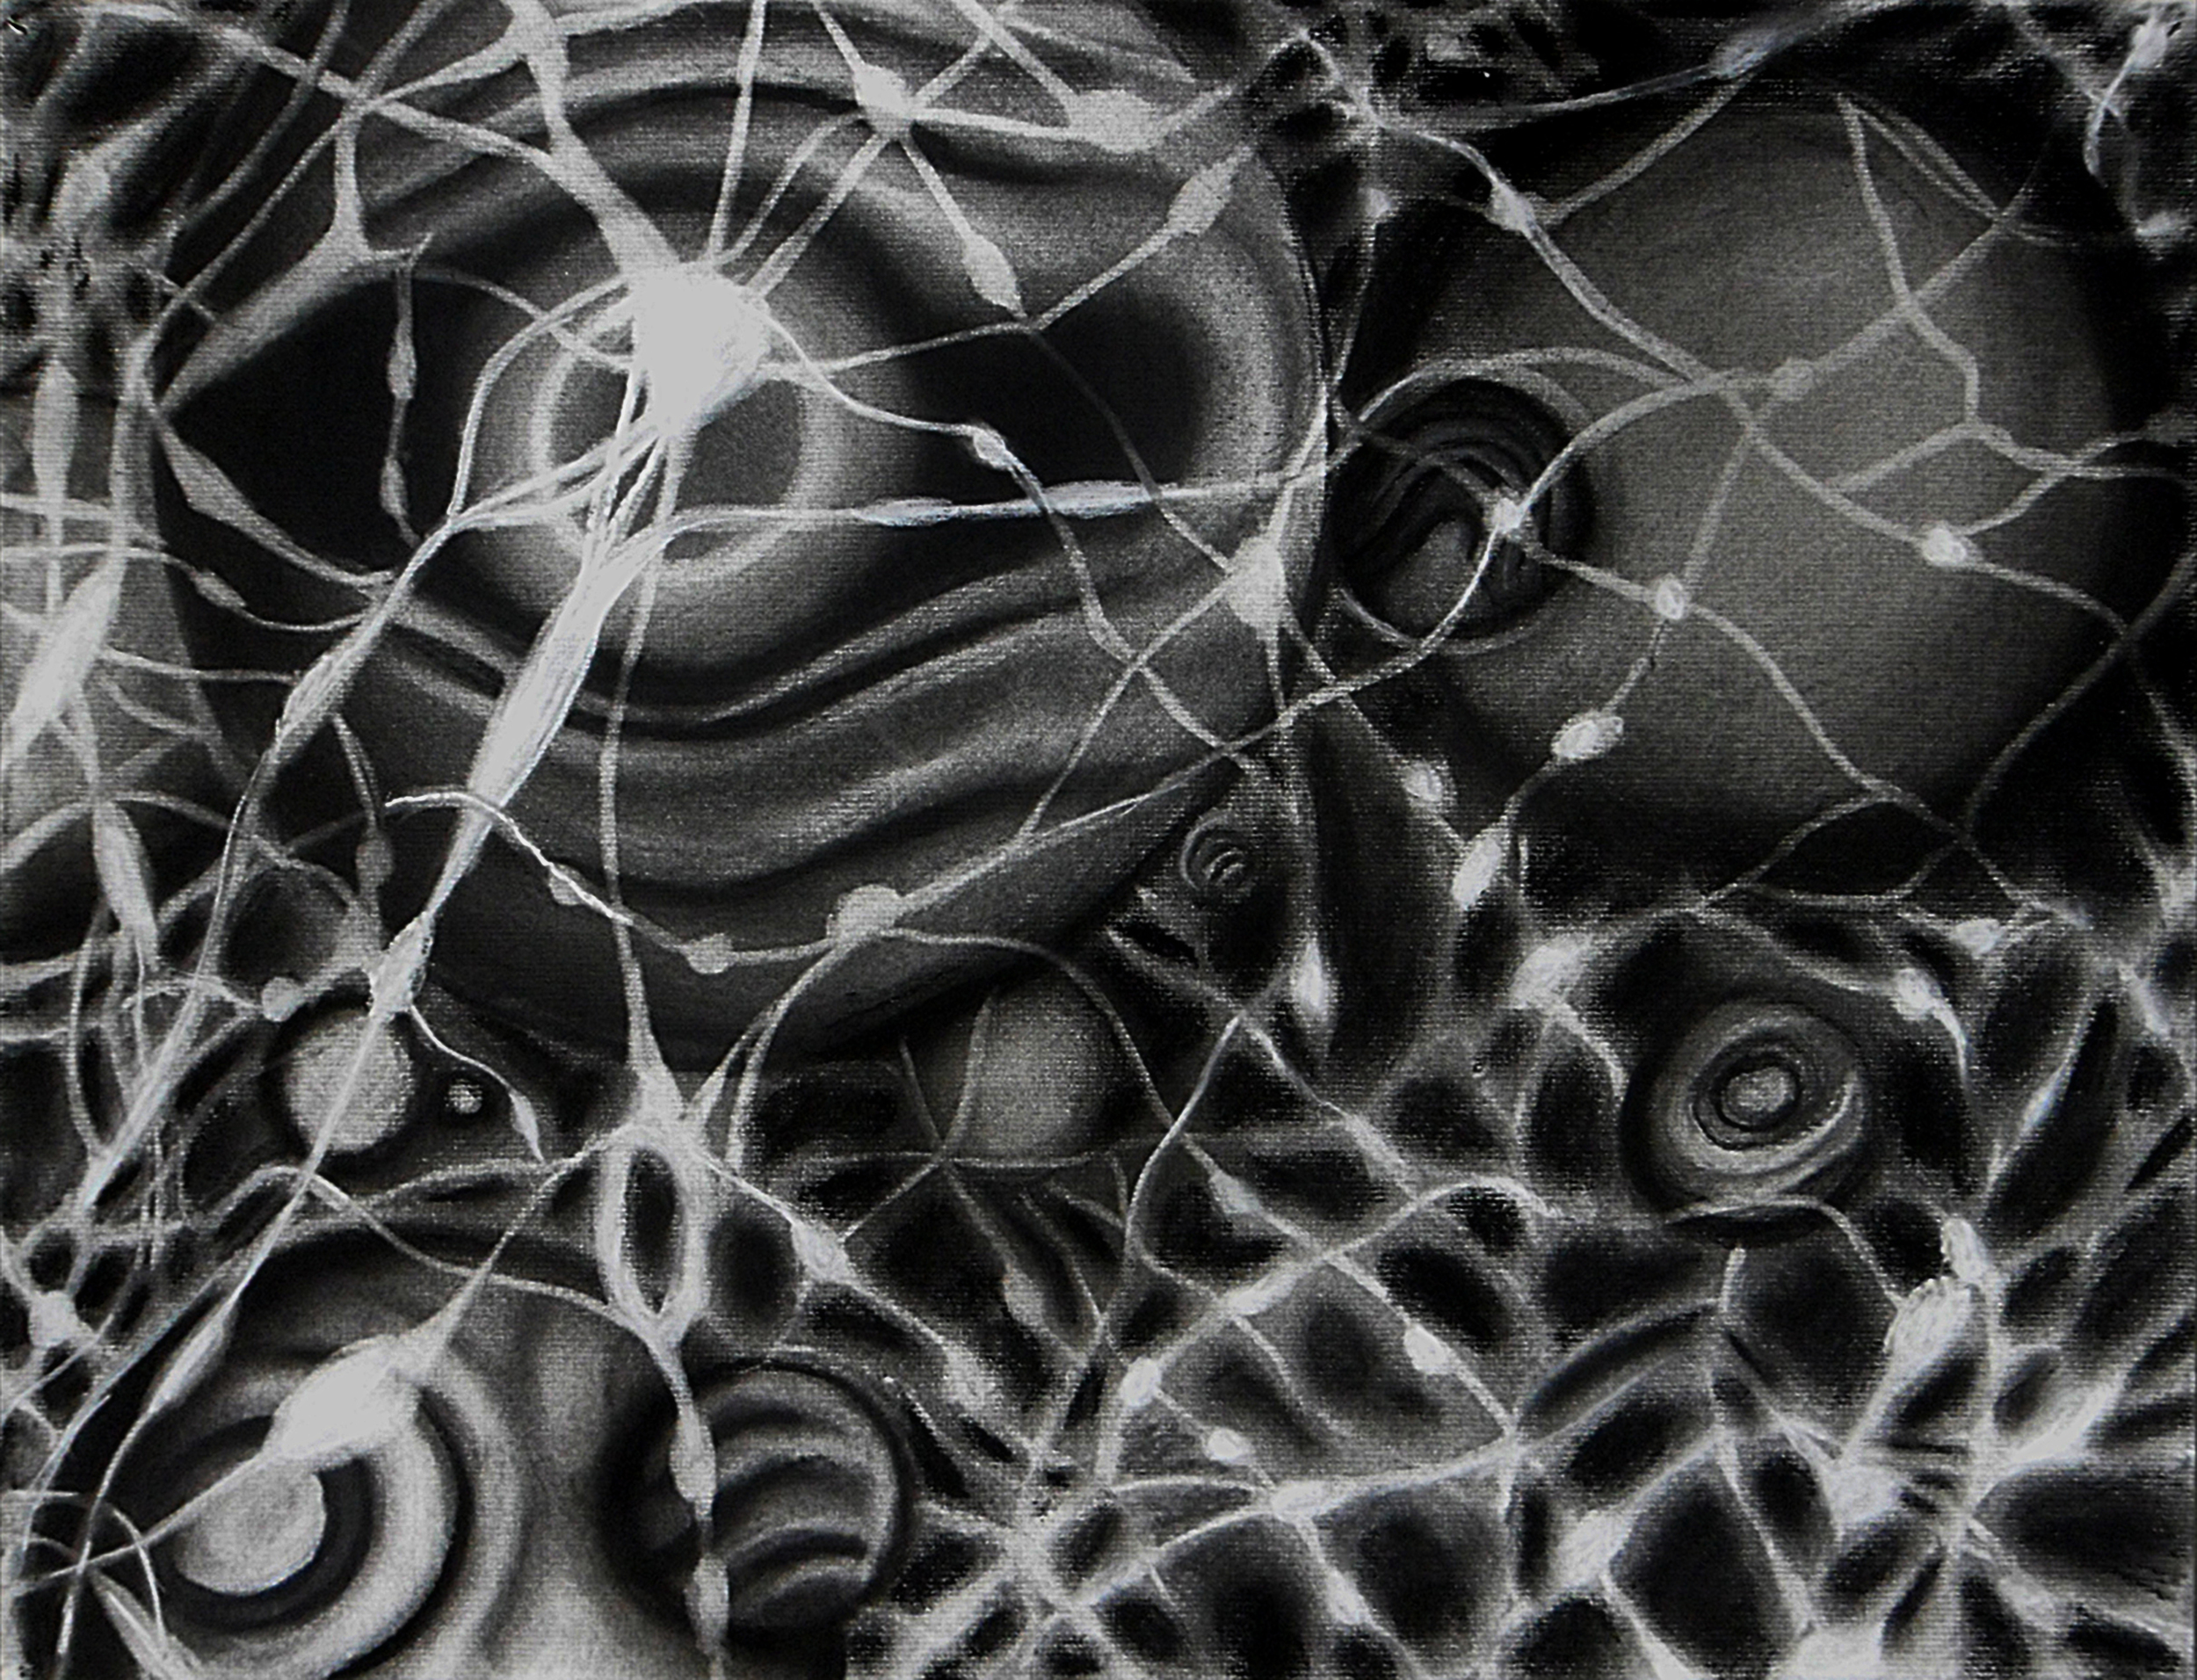 Conti  on Charcoal pencil on Charcoal paper.